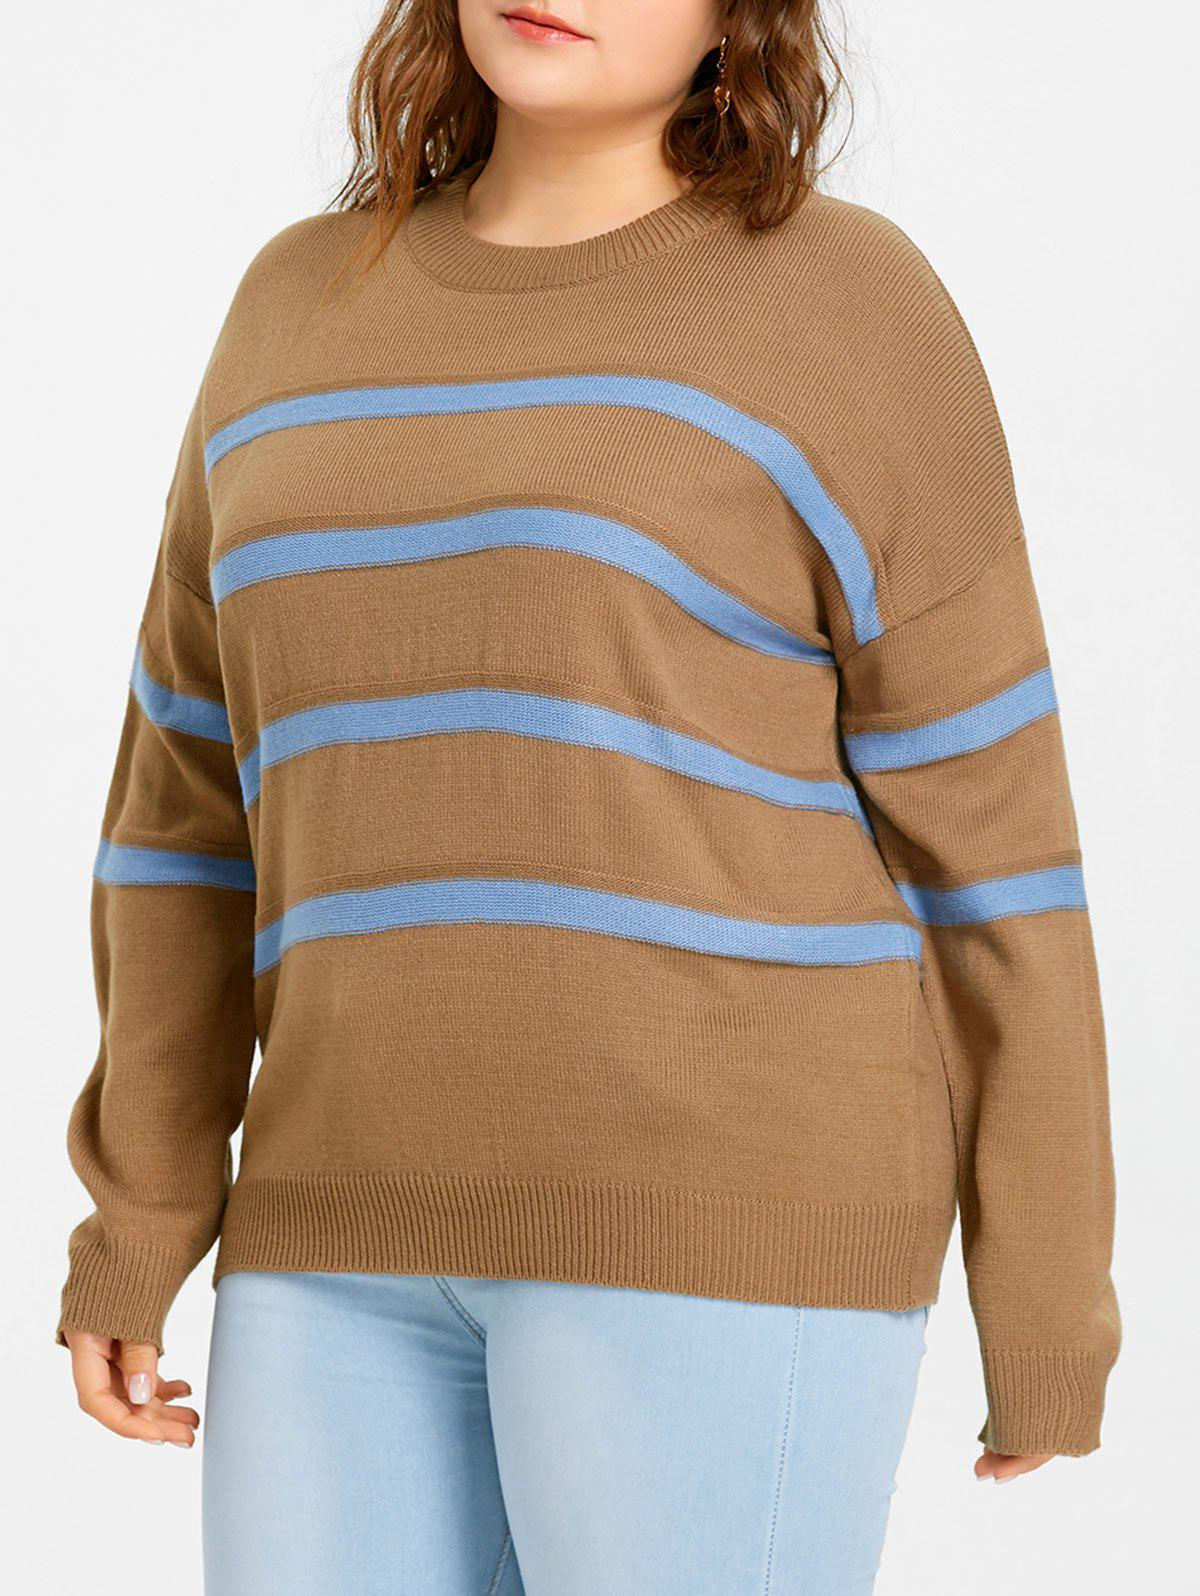 Drop Shoulder Striped Plus Size Jumper Sweater 241489204